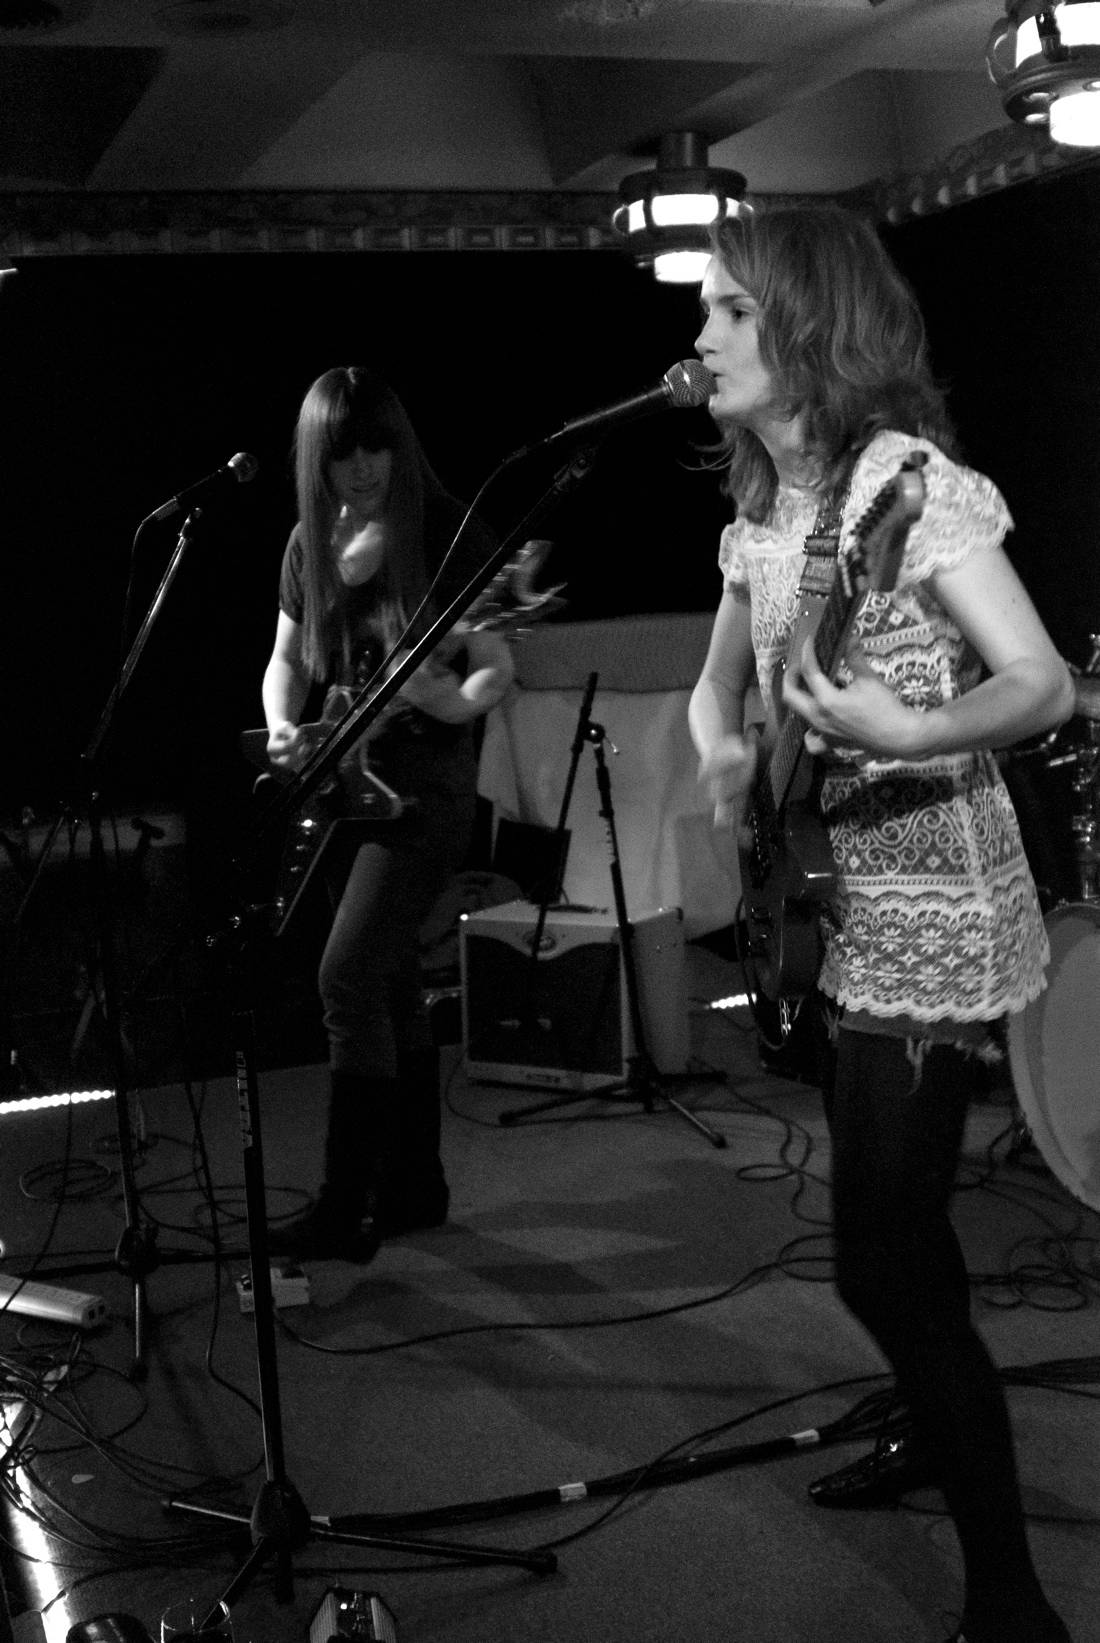 Nightwood band concert photo